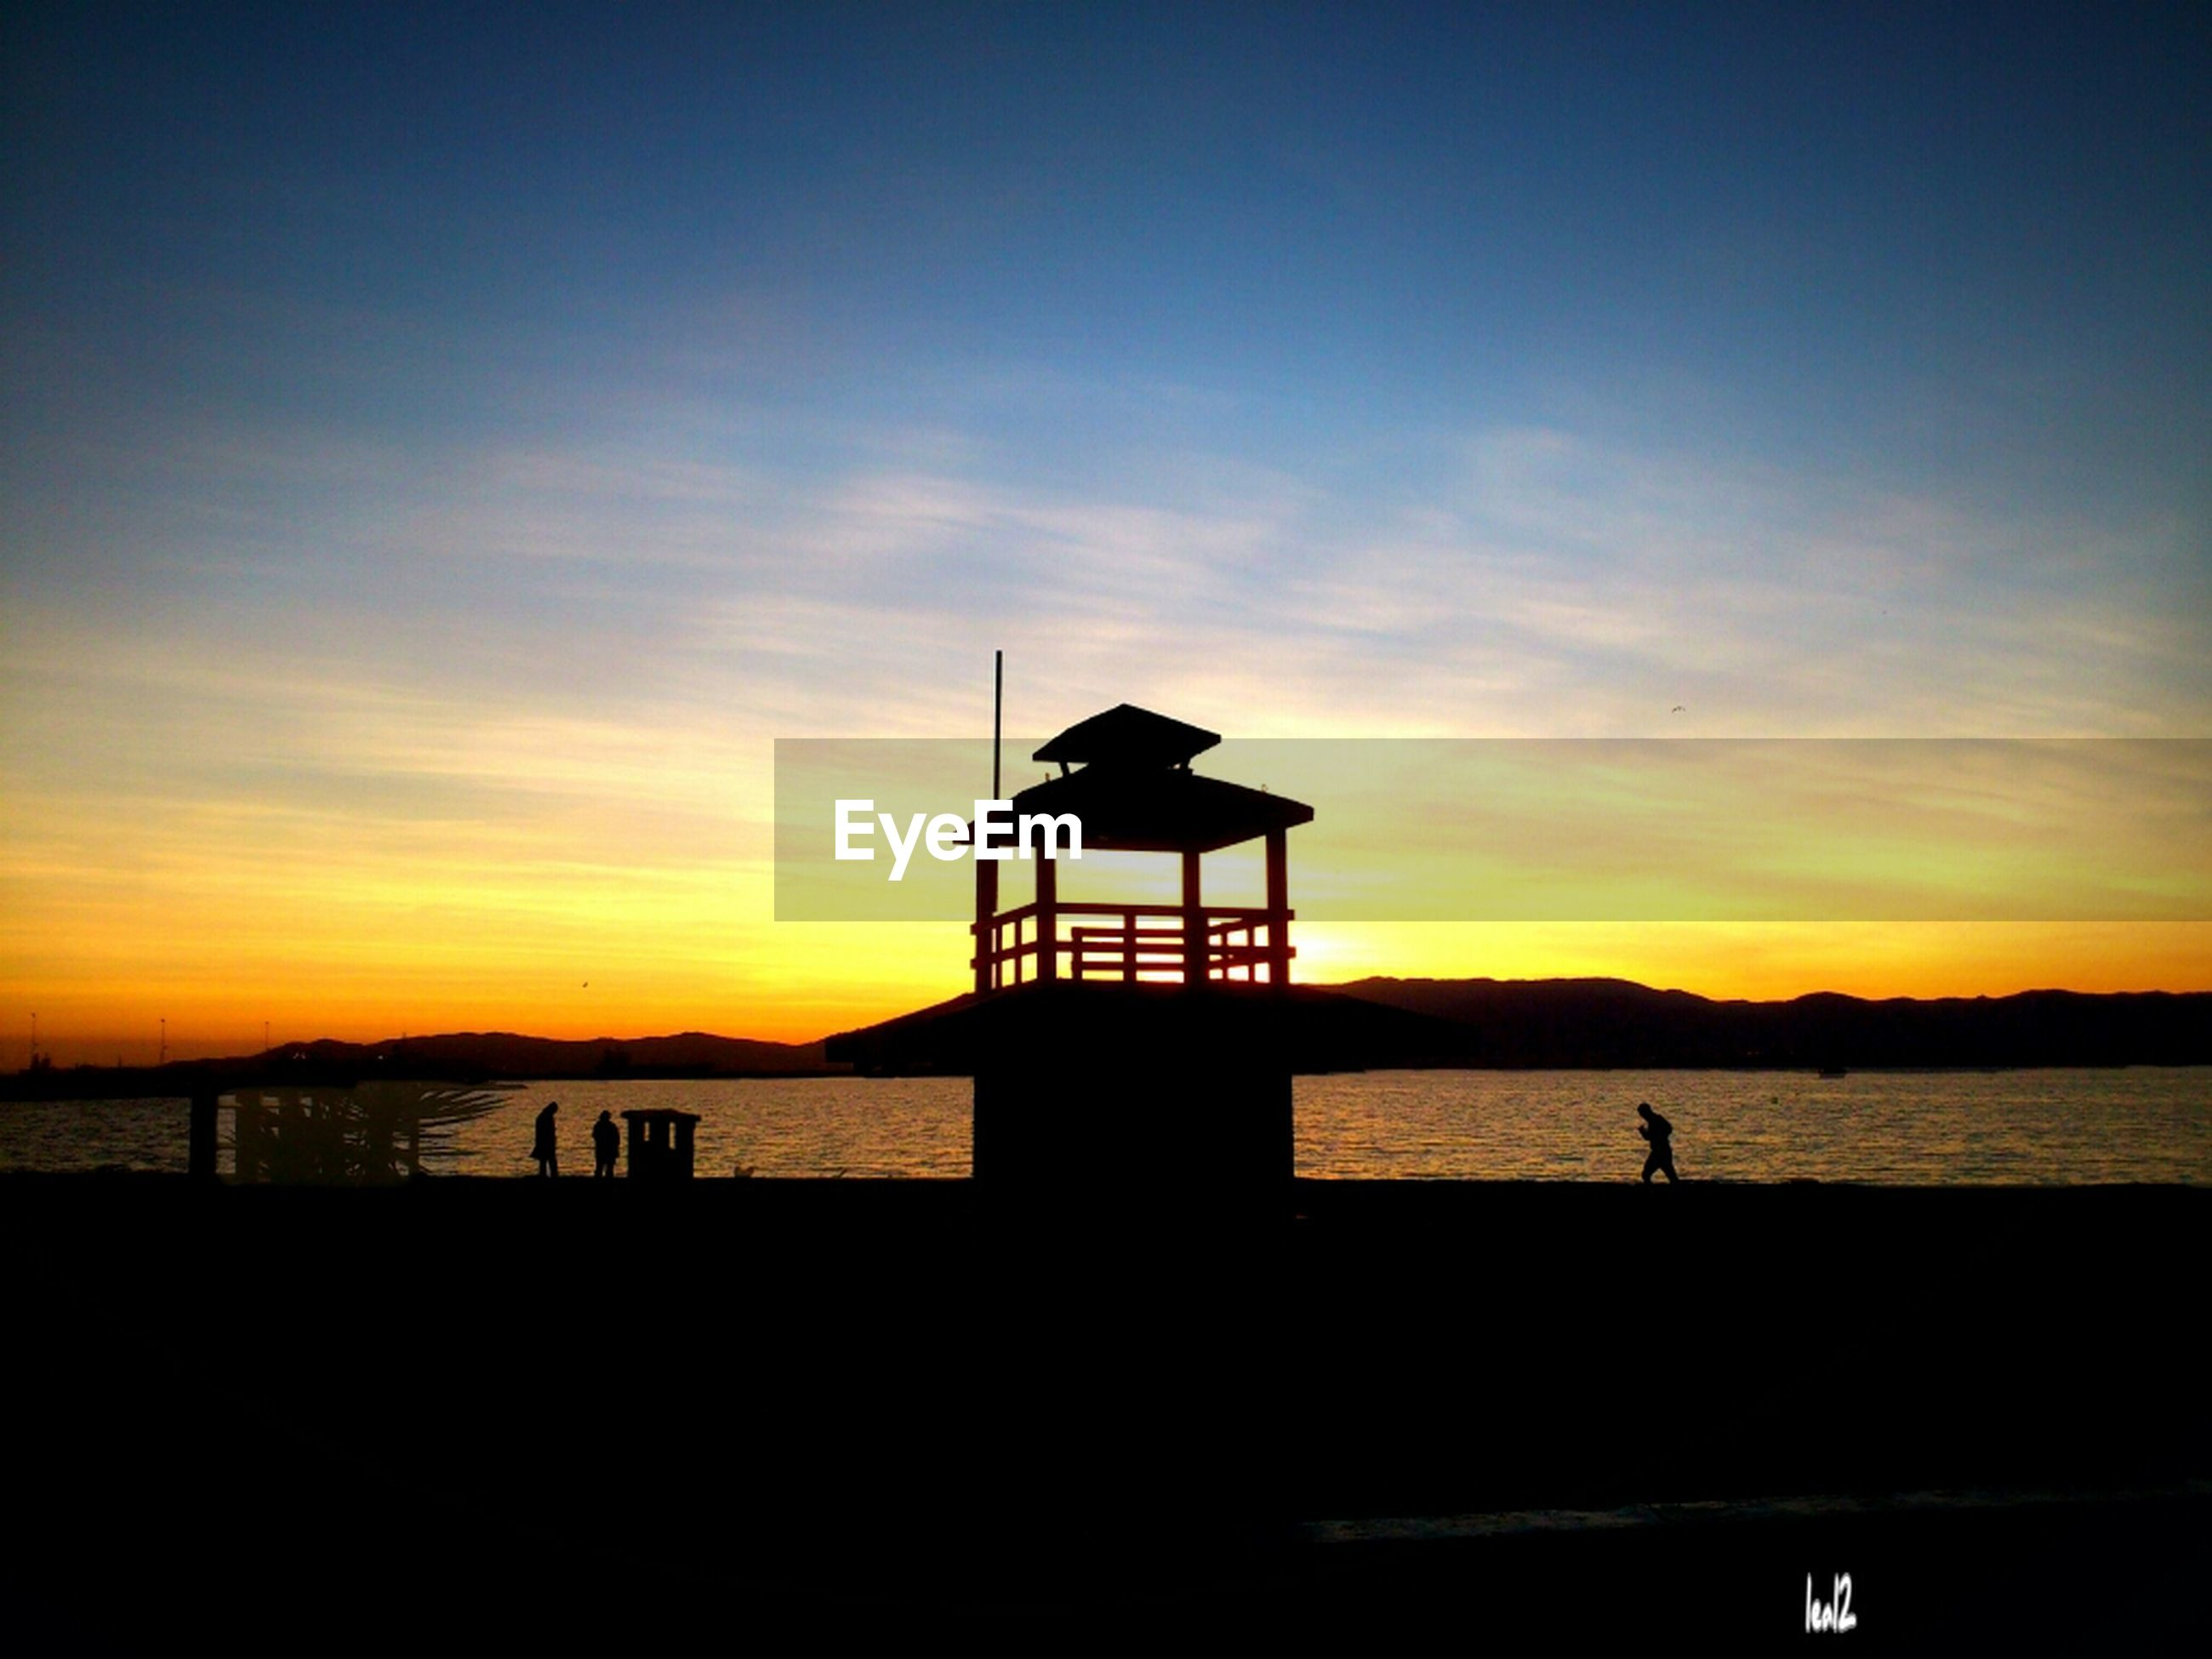 sunset, silhouette, sea, water, sky, horizon over water, scenics, orange color, beauty in nature, tranquility, tranquil scene, beach, built structure, idyllic, nature, architecture, pier, shore, cloud - sky, lighthouse